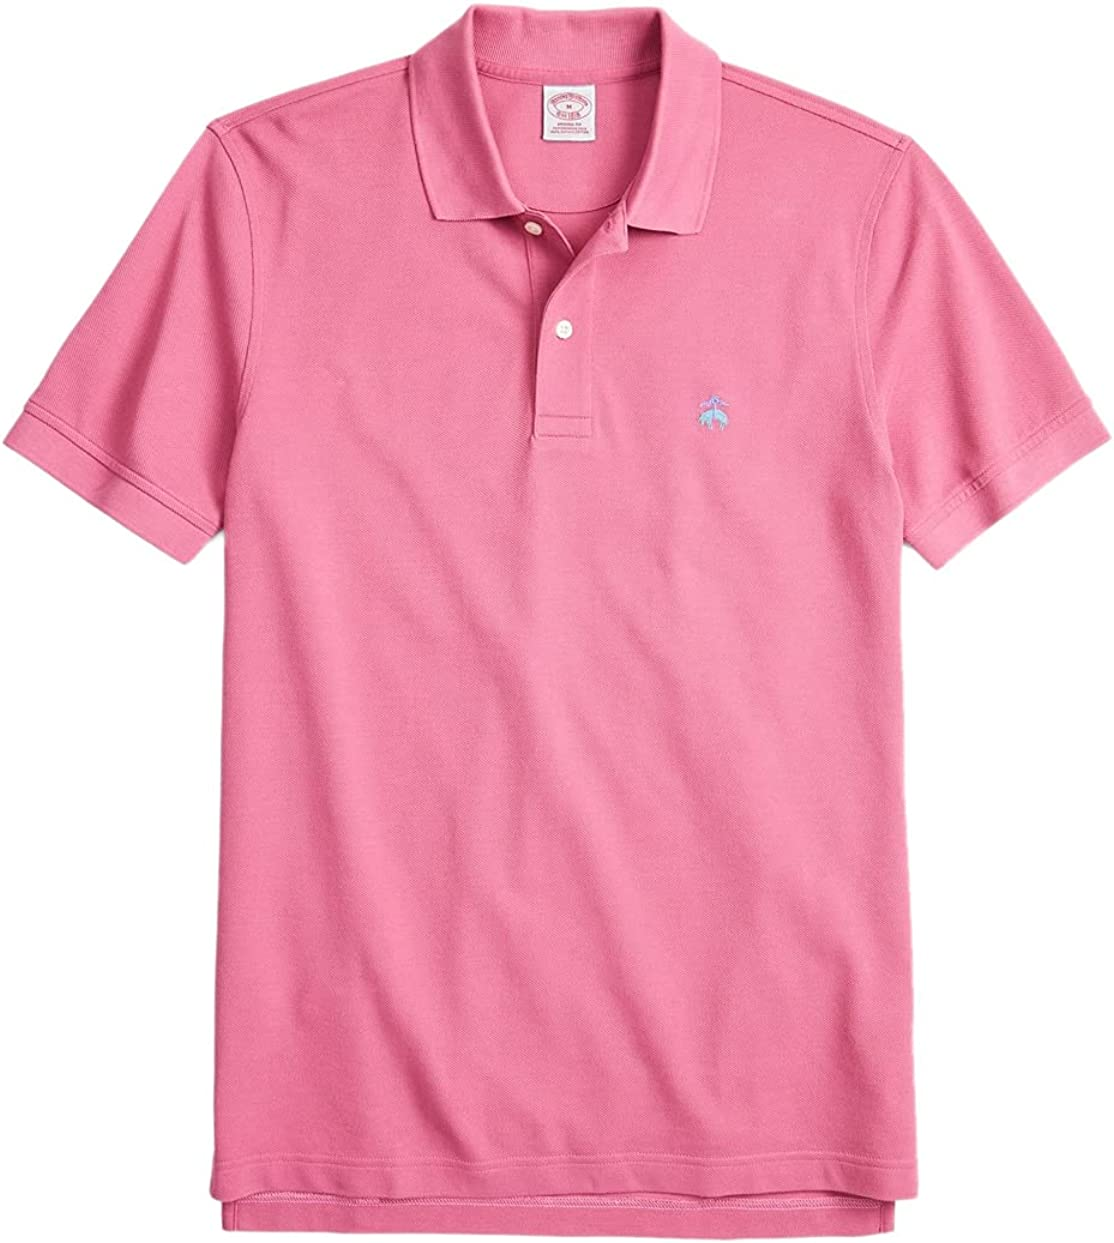 Brooks Brothers Men's Original Fit Supima Cotton Multi Embroidered Performance Polo Shirt